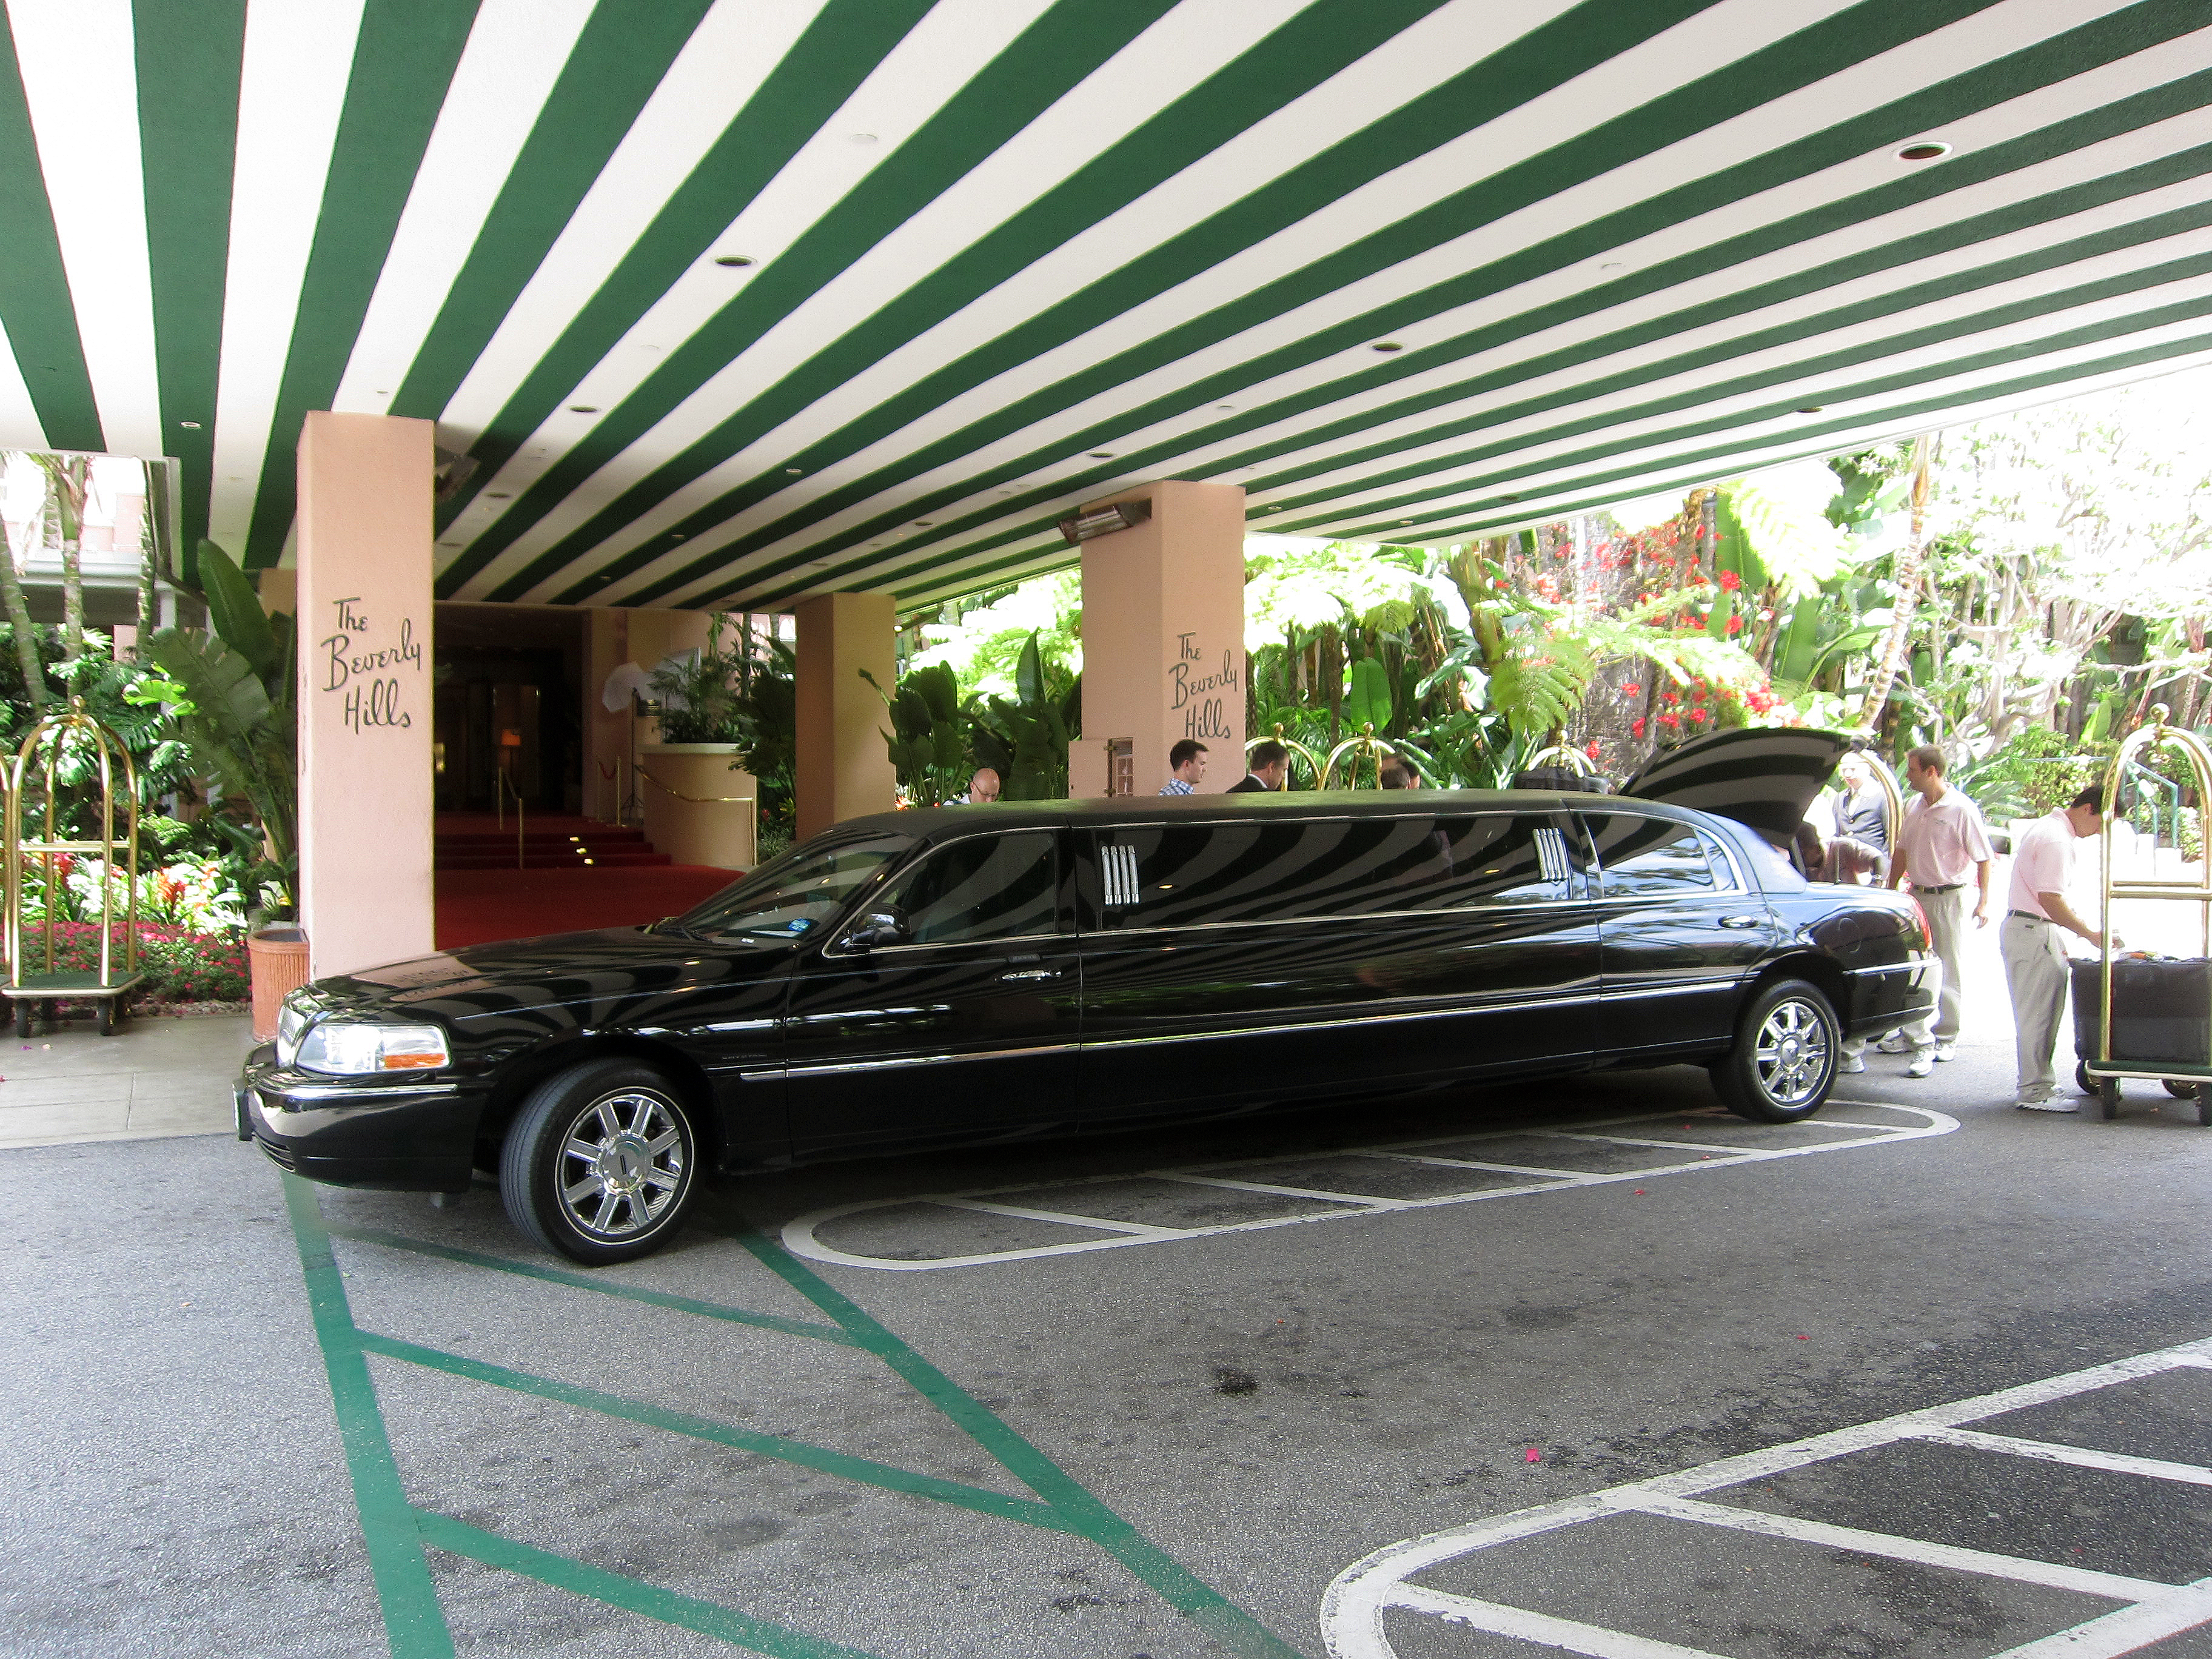 """""""The Beverly Hills Hotel"""" by Alan Light is licensed under CC BY 2.0"""